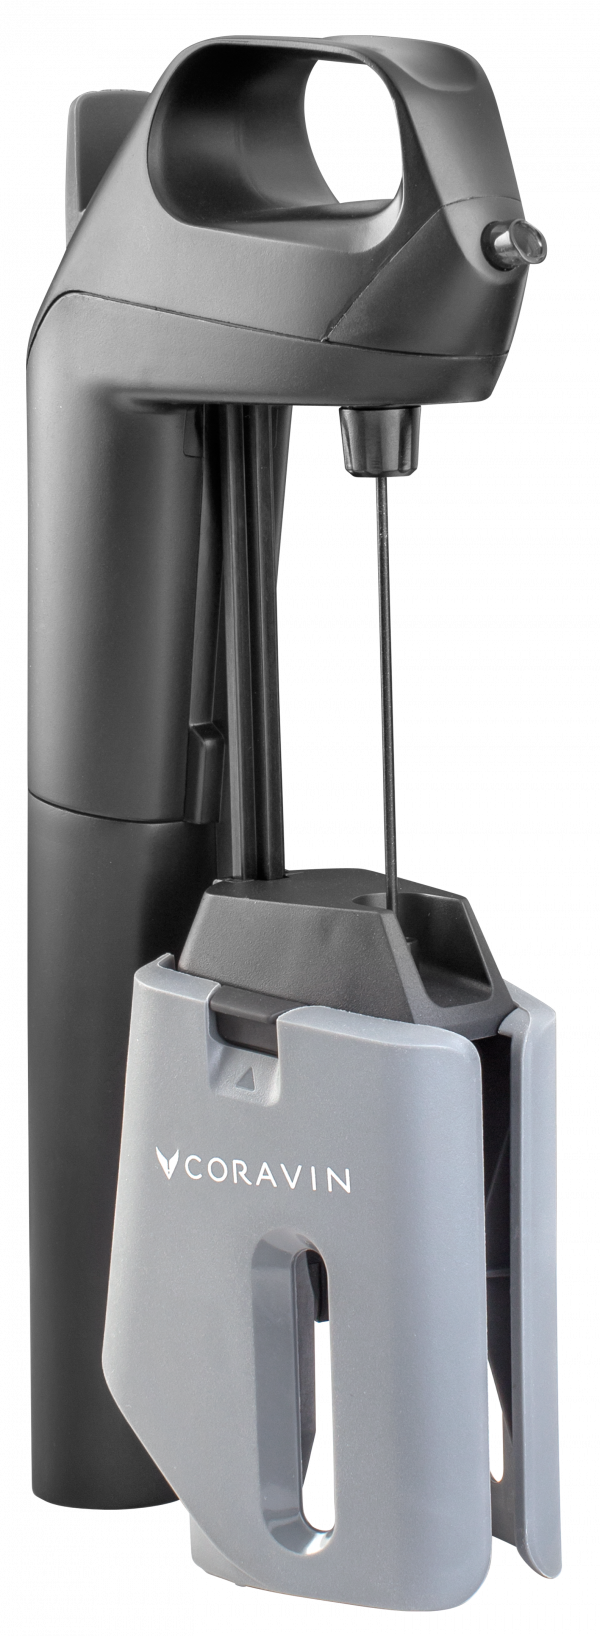 The Coravin Model Three is the introductory system for wine lovers